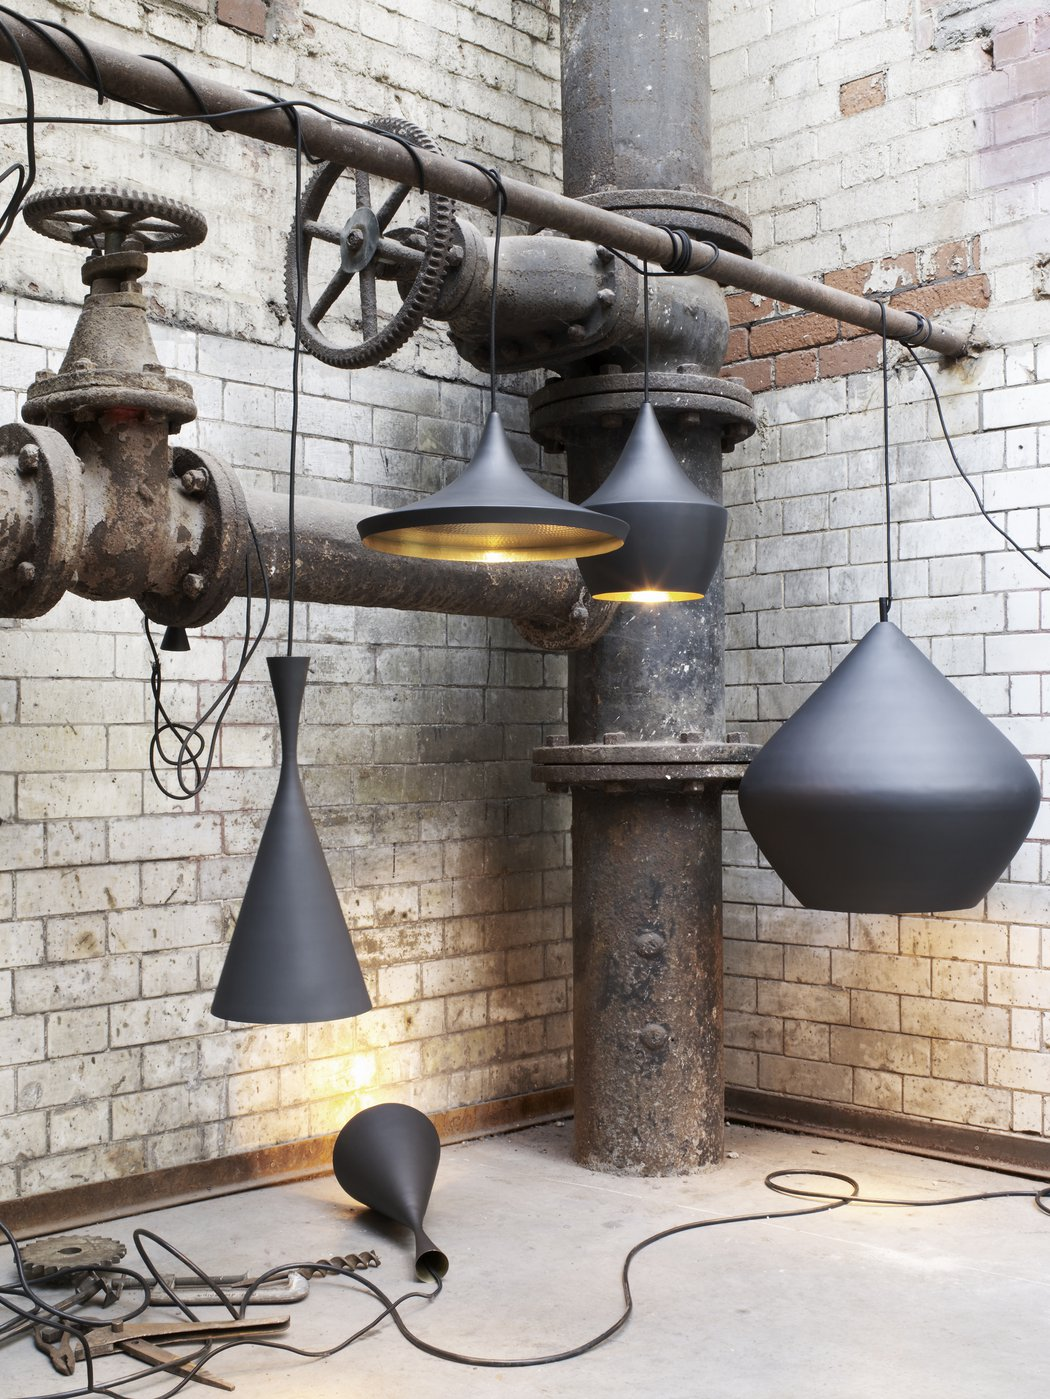 design classic lighting. inspired by the sculptural simplicity of brass cooking pots and traditional vessels used in india each light is spun handbeaten available a range design classic lighting o